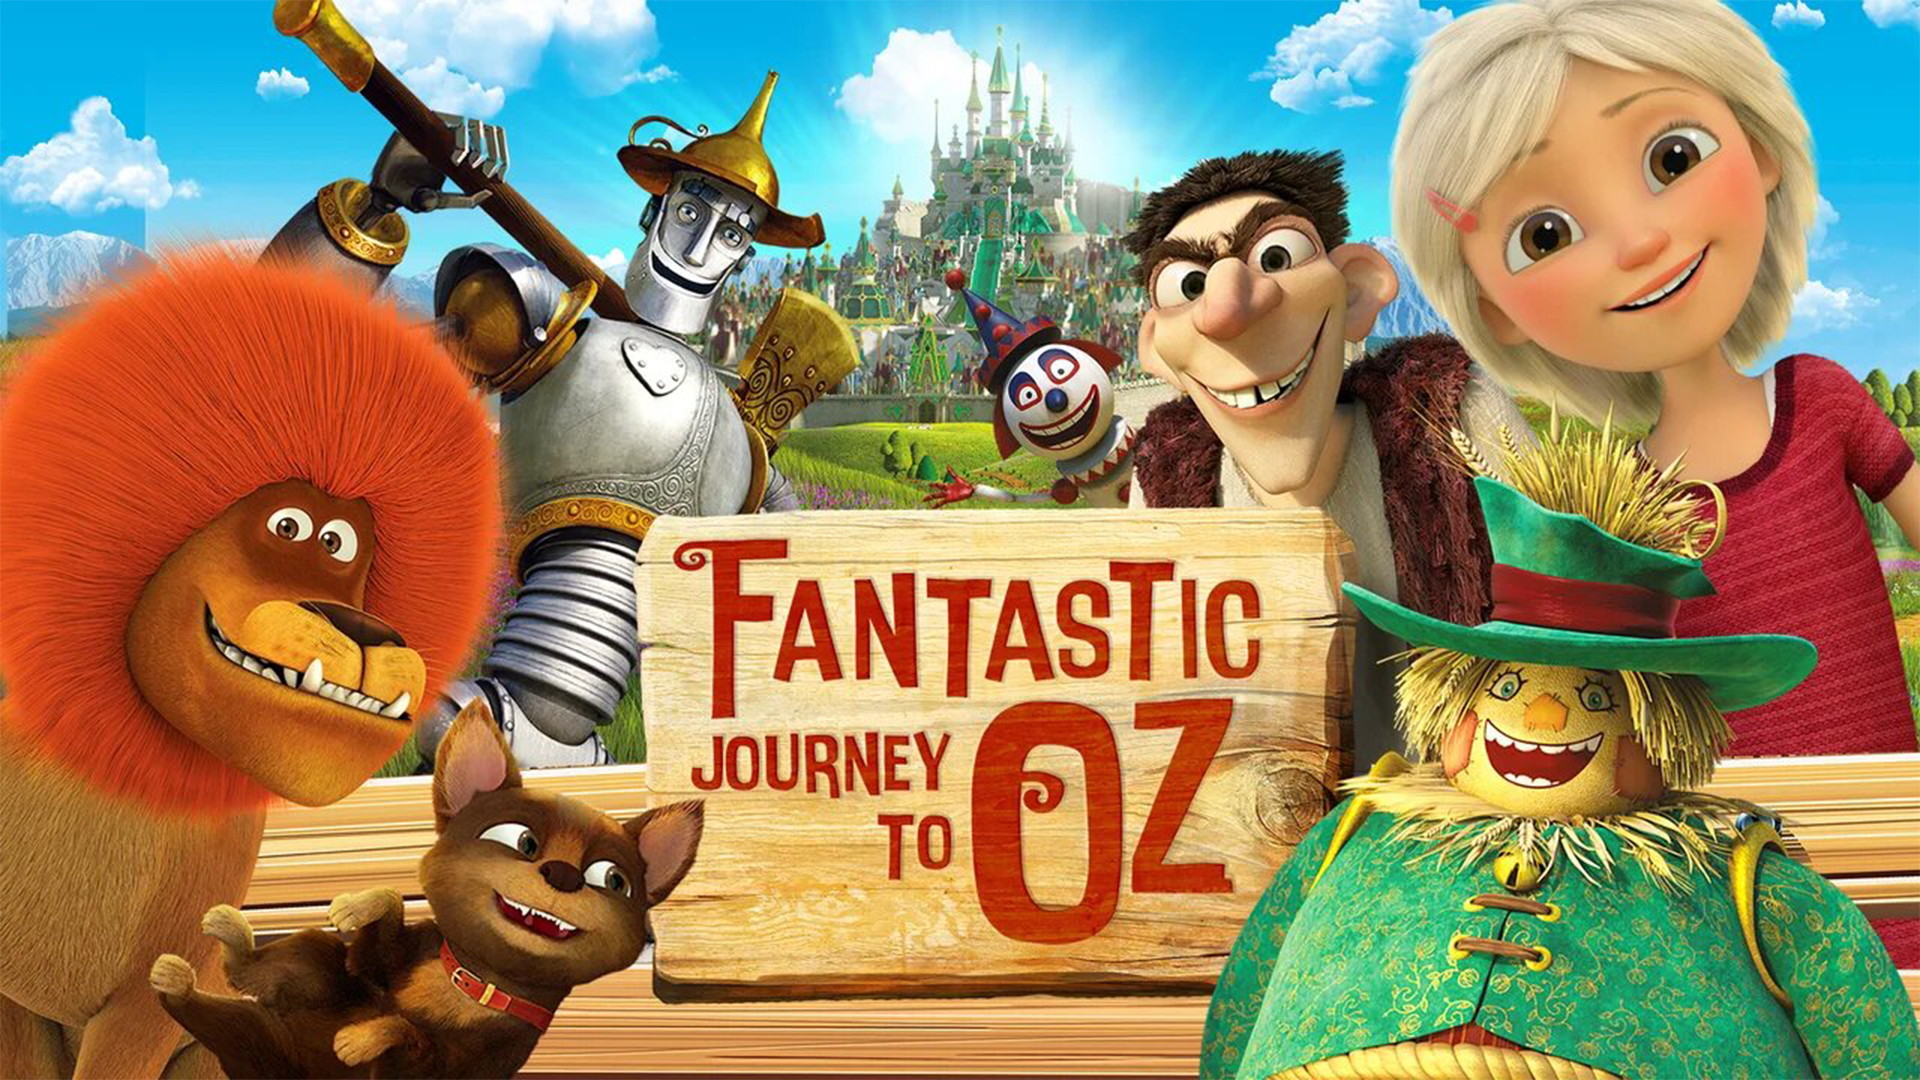 Fantastic Journey to Oz